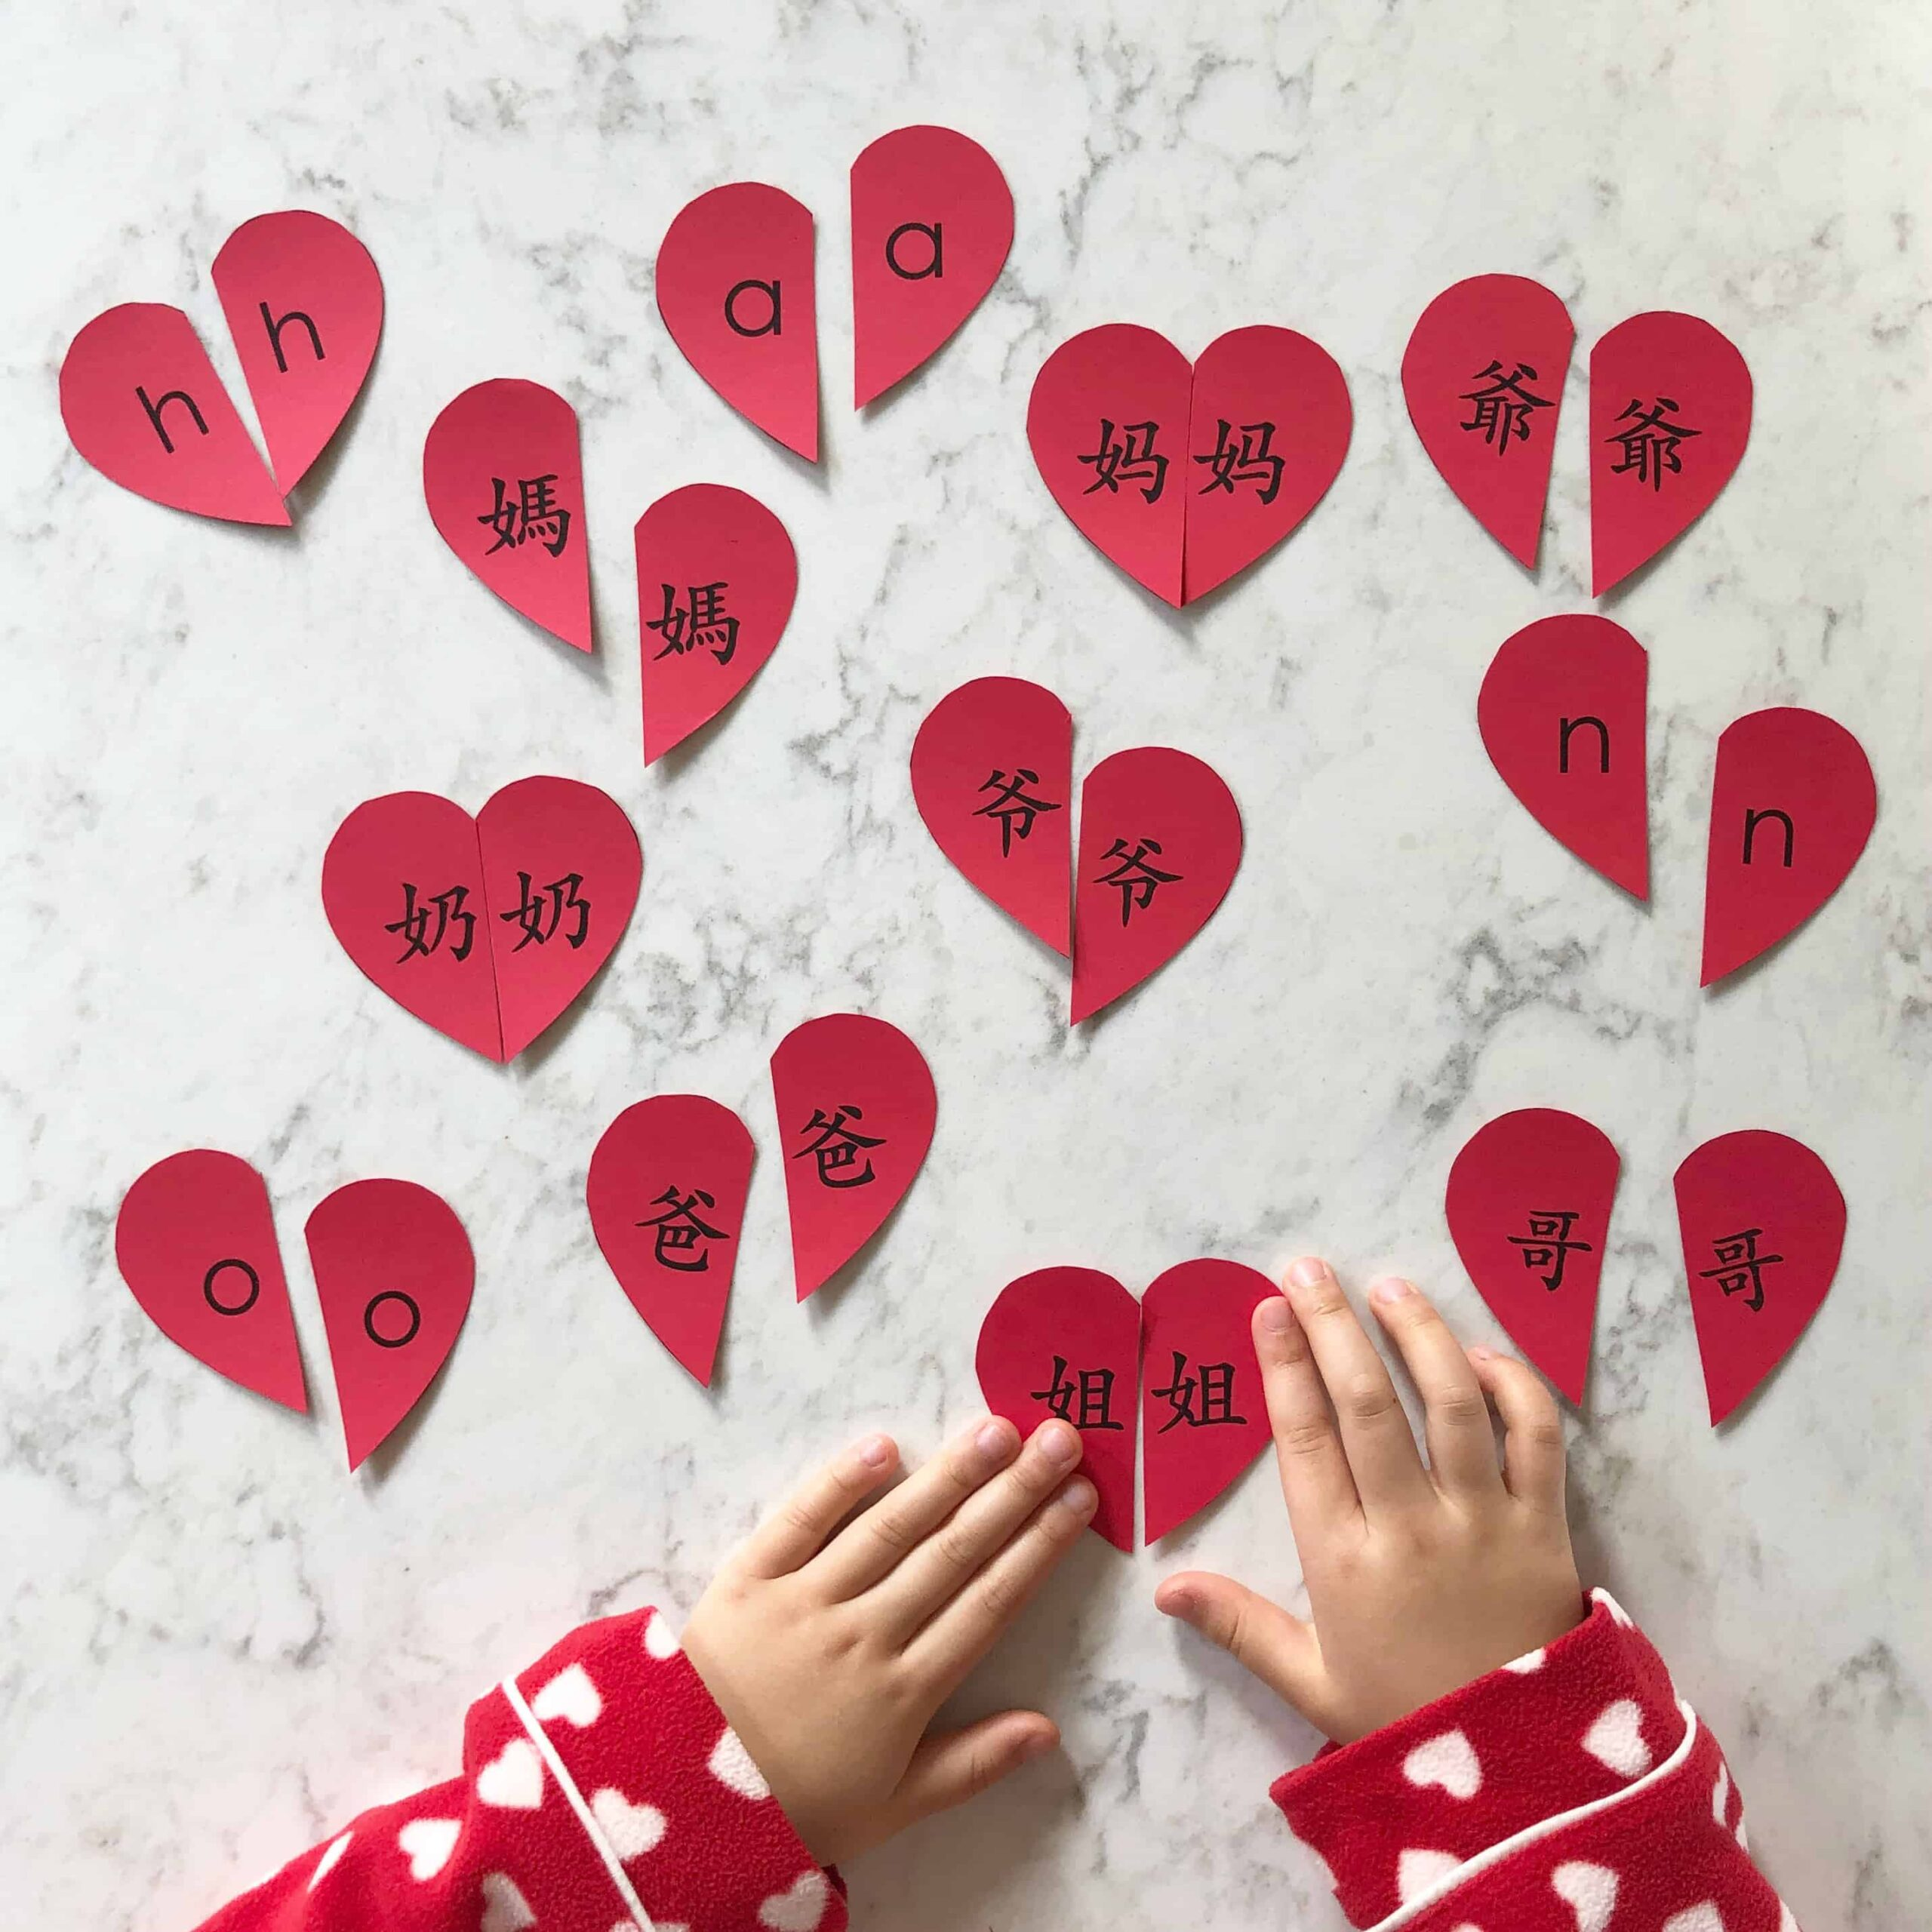 Learn Names of Chinese Family Members with Printable Heart Matching Game